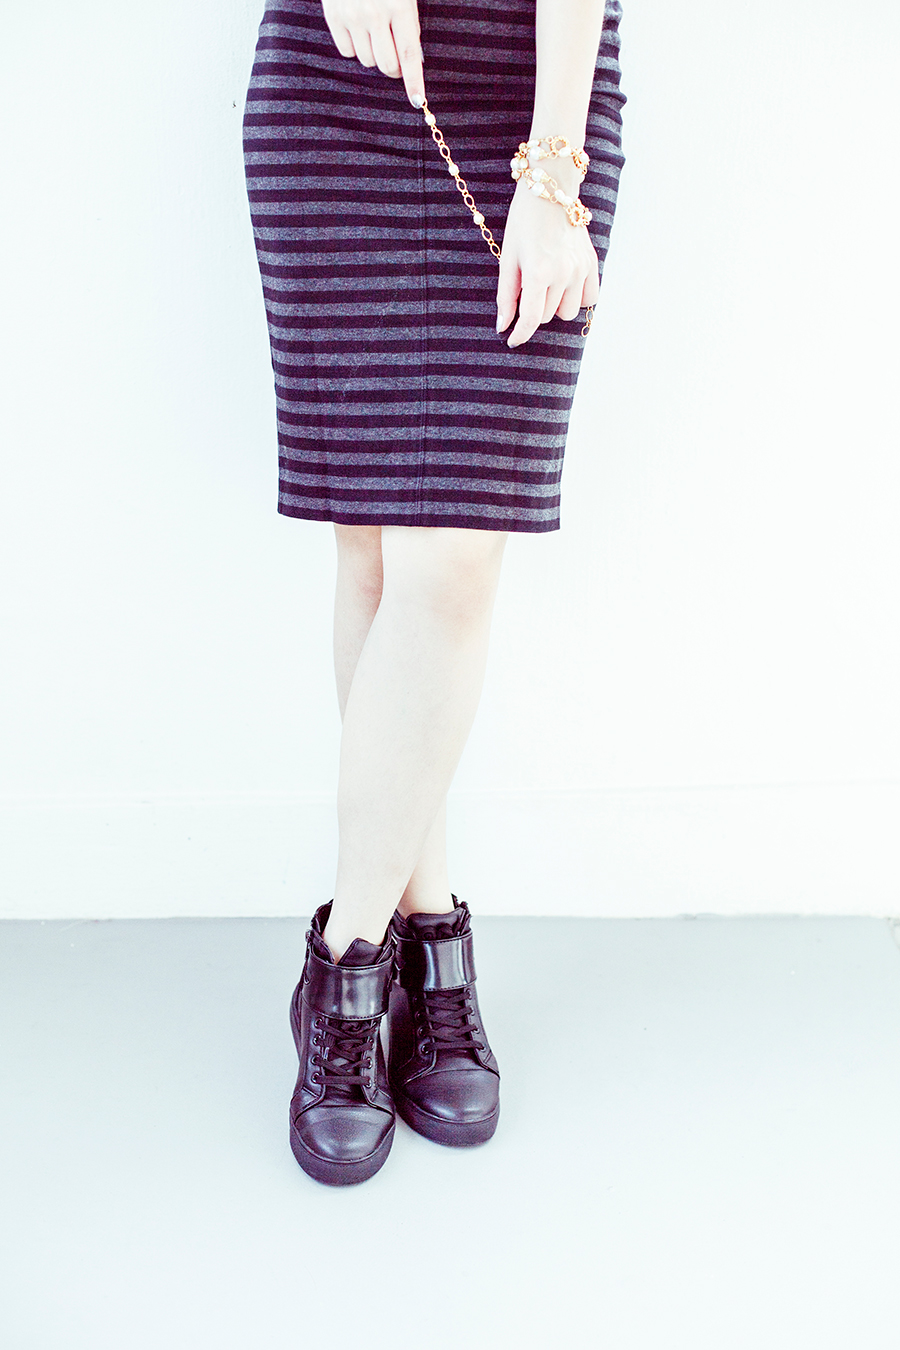 Vedette Shapewear outfit: Uniqlo striped pencil skirt, Zalora PU high top sneakers, vintage gold necklace.